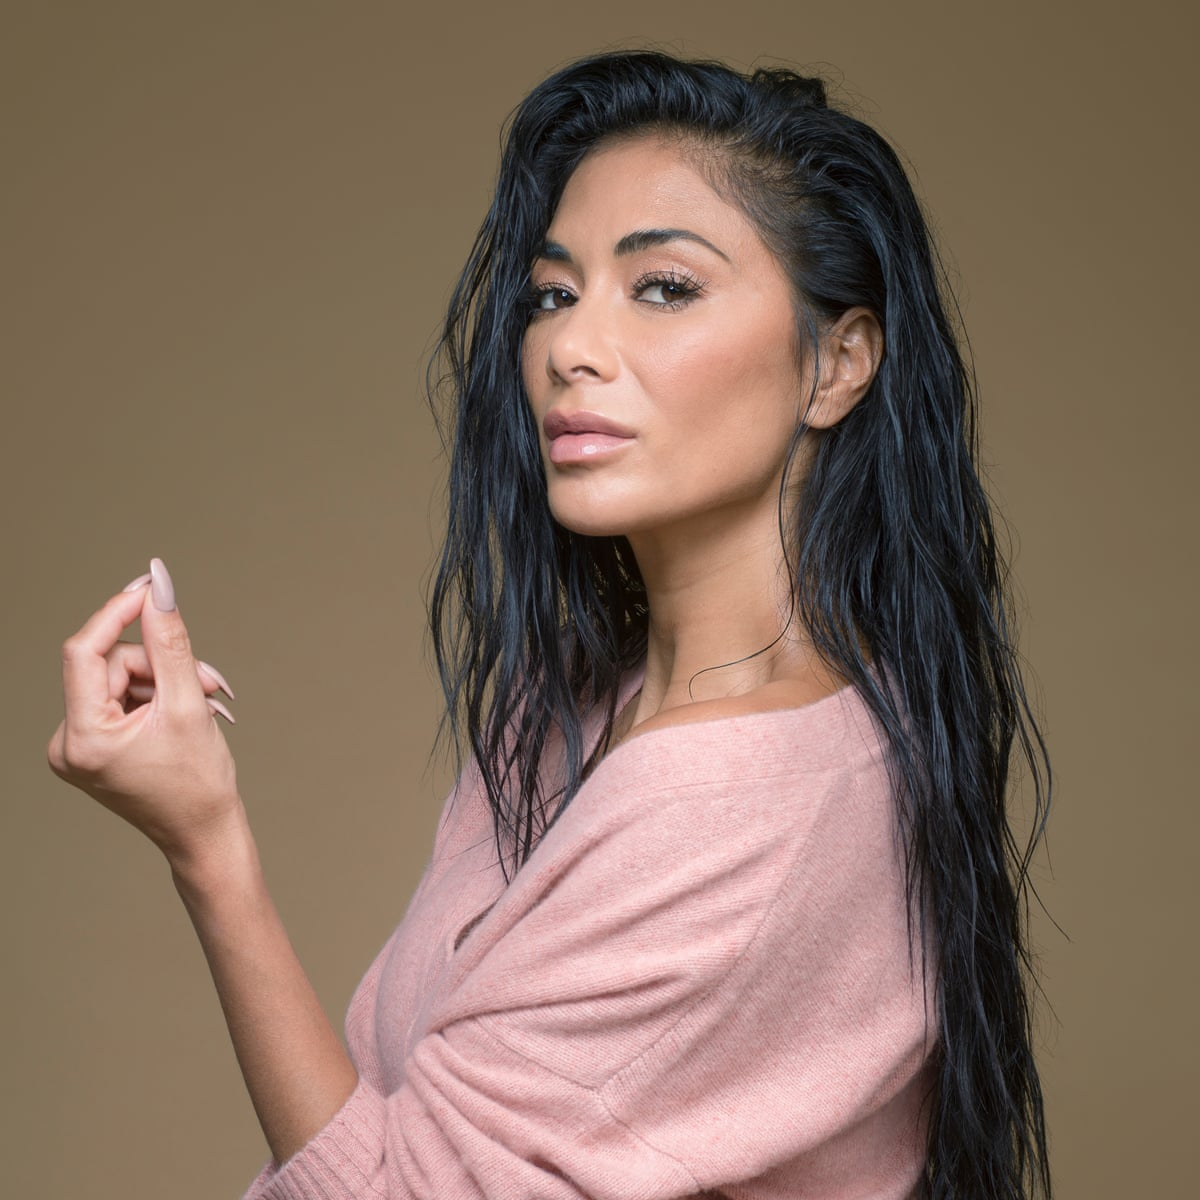 """""""nicole-scherzinger-impresses-fans-by-bathing-in-ice-water-after-workout"""""""